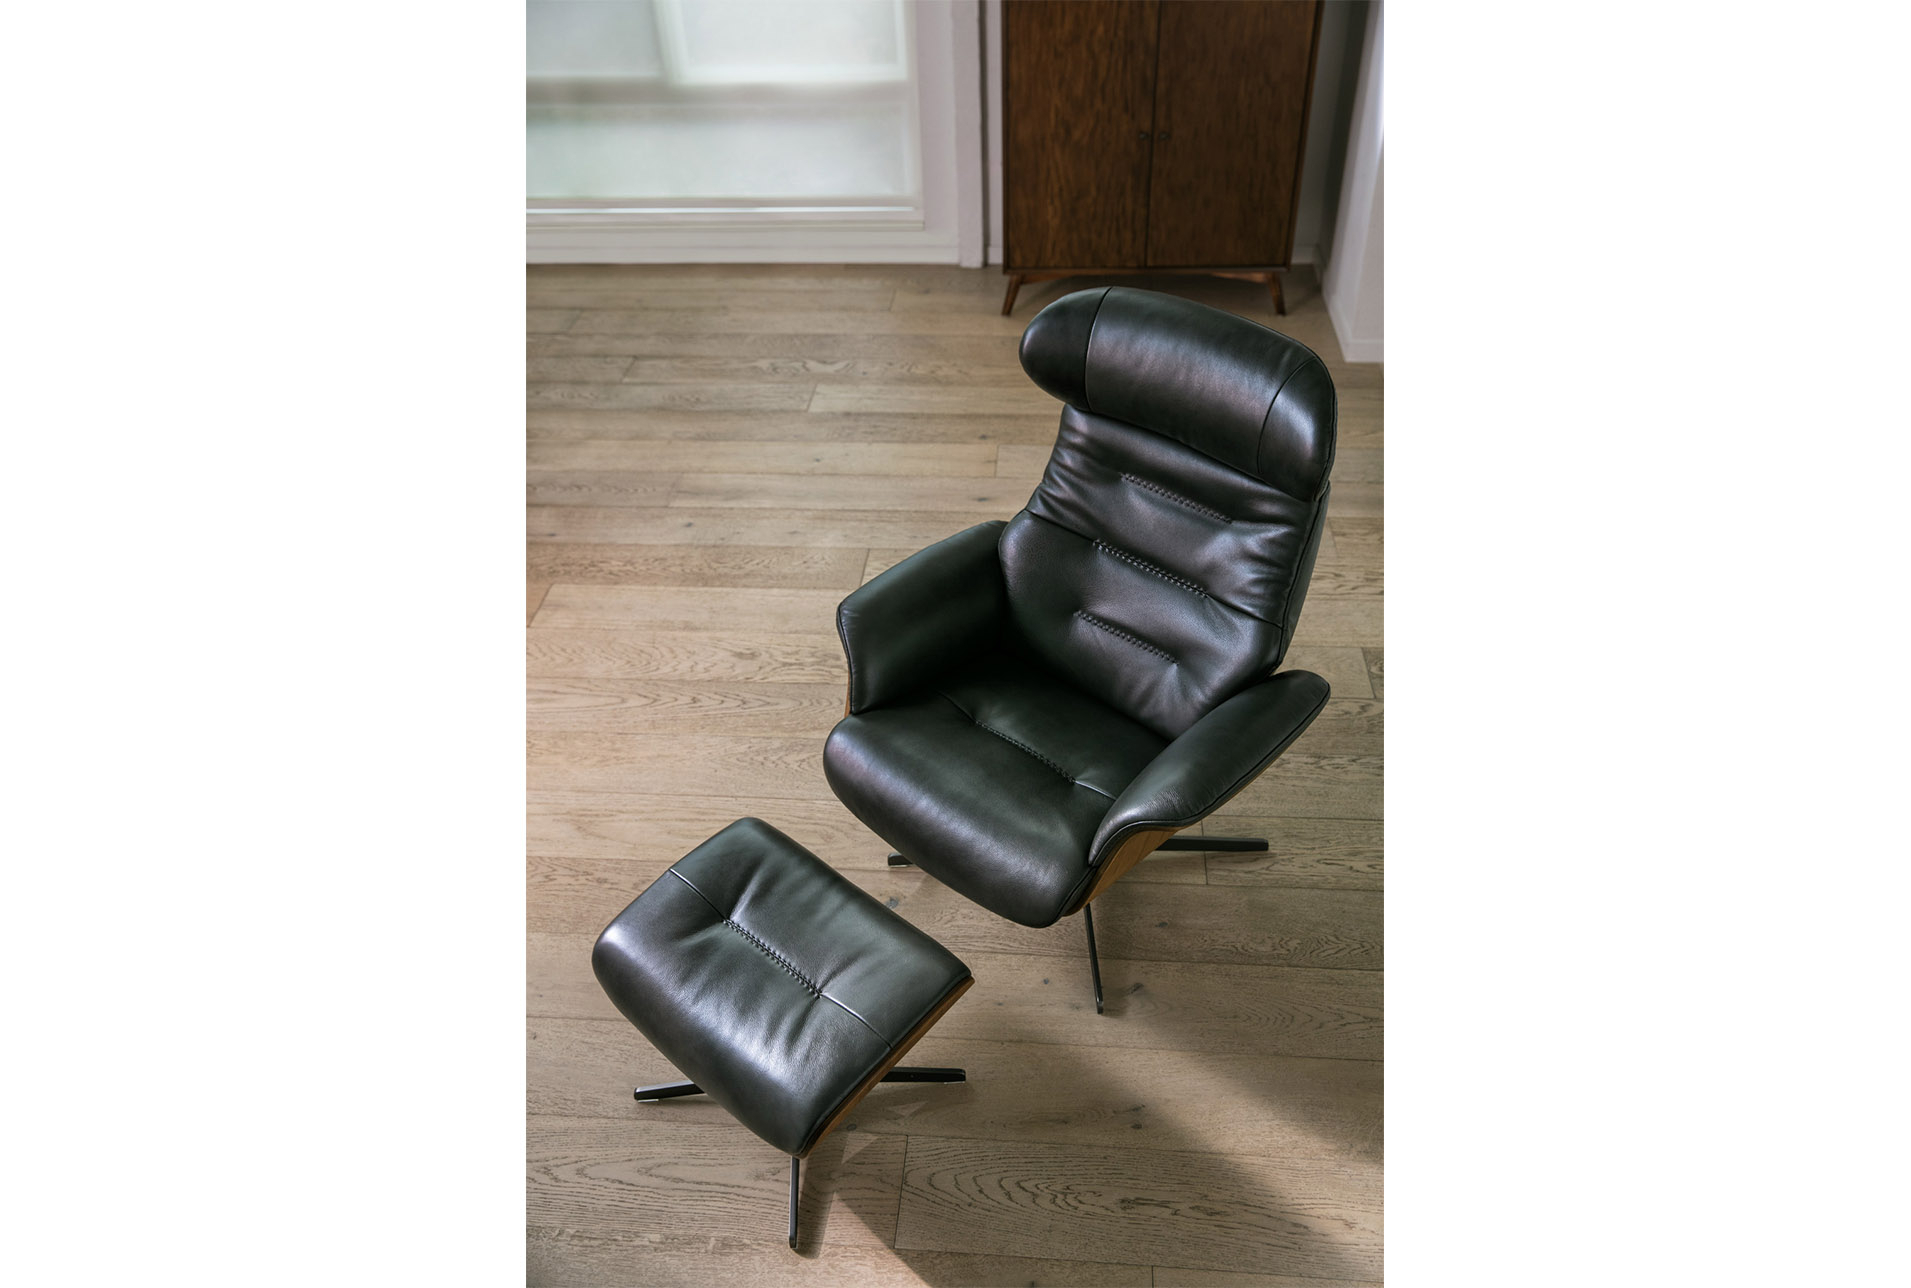 Amala Dark Grey Leather Reclining Swivel Chair & Ottoman In 2018 Intended For Amala Dark Grey Leather Reclining Swivel Chairs (Image 2 of 25)